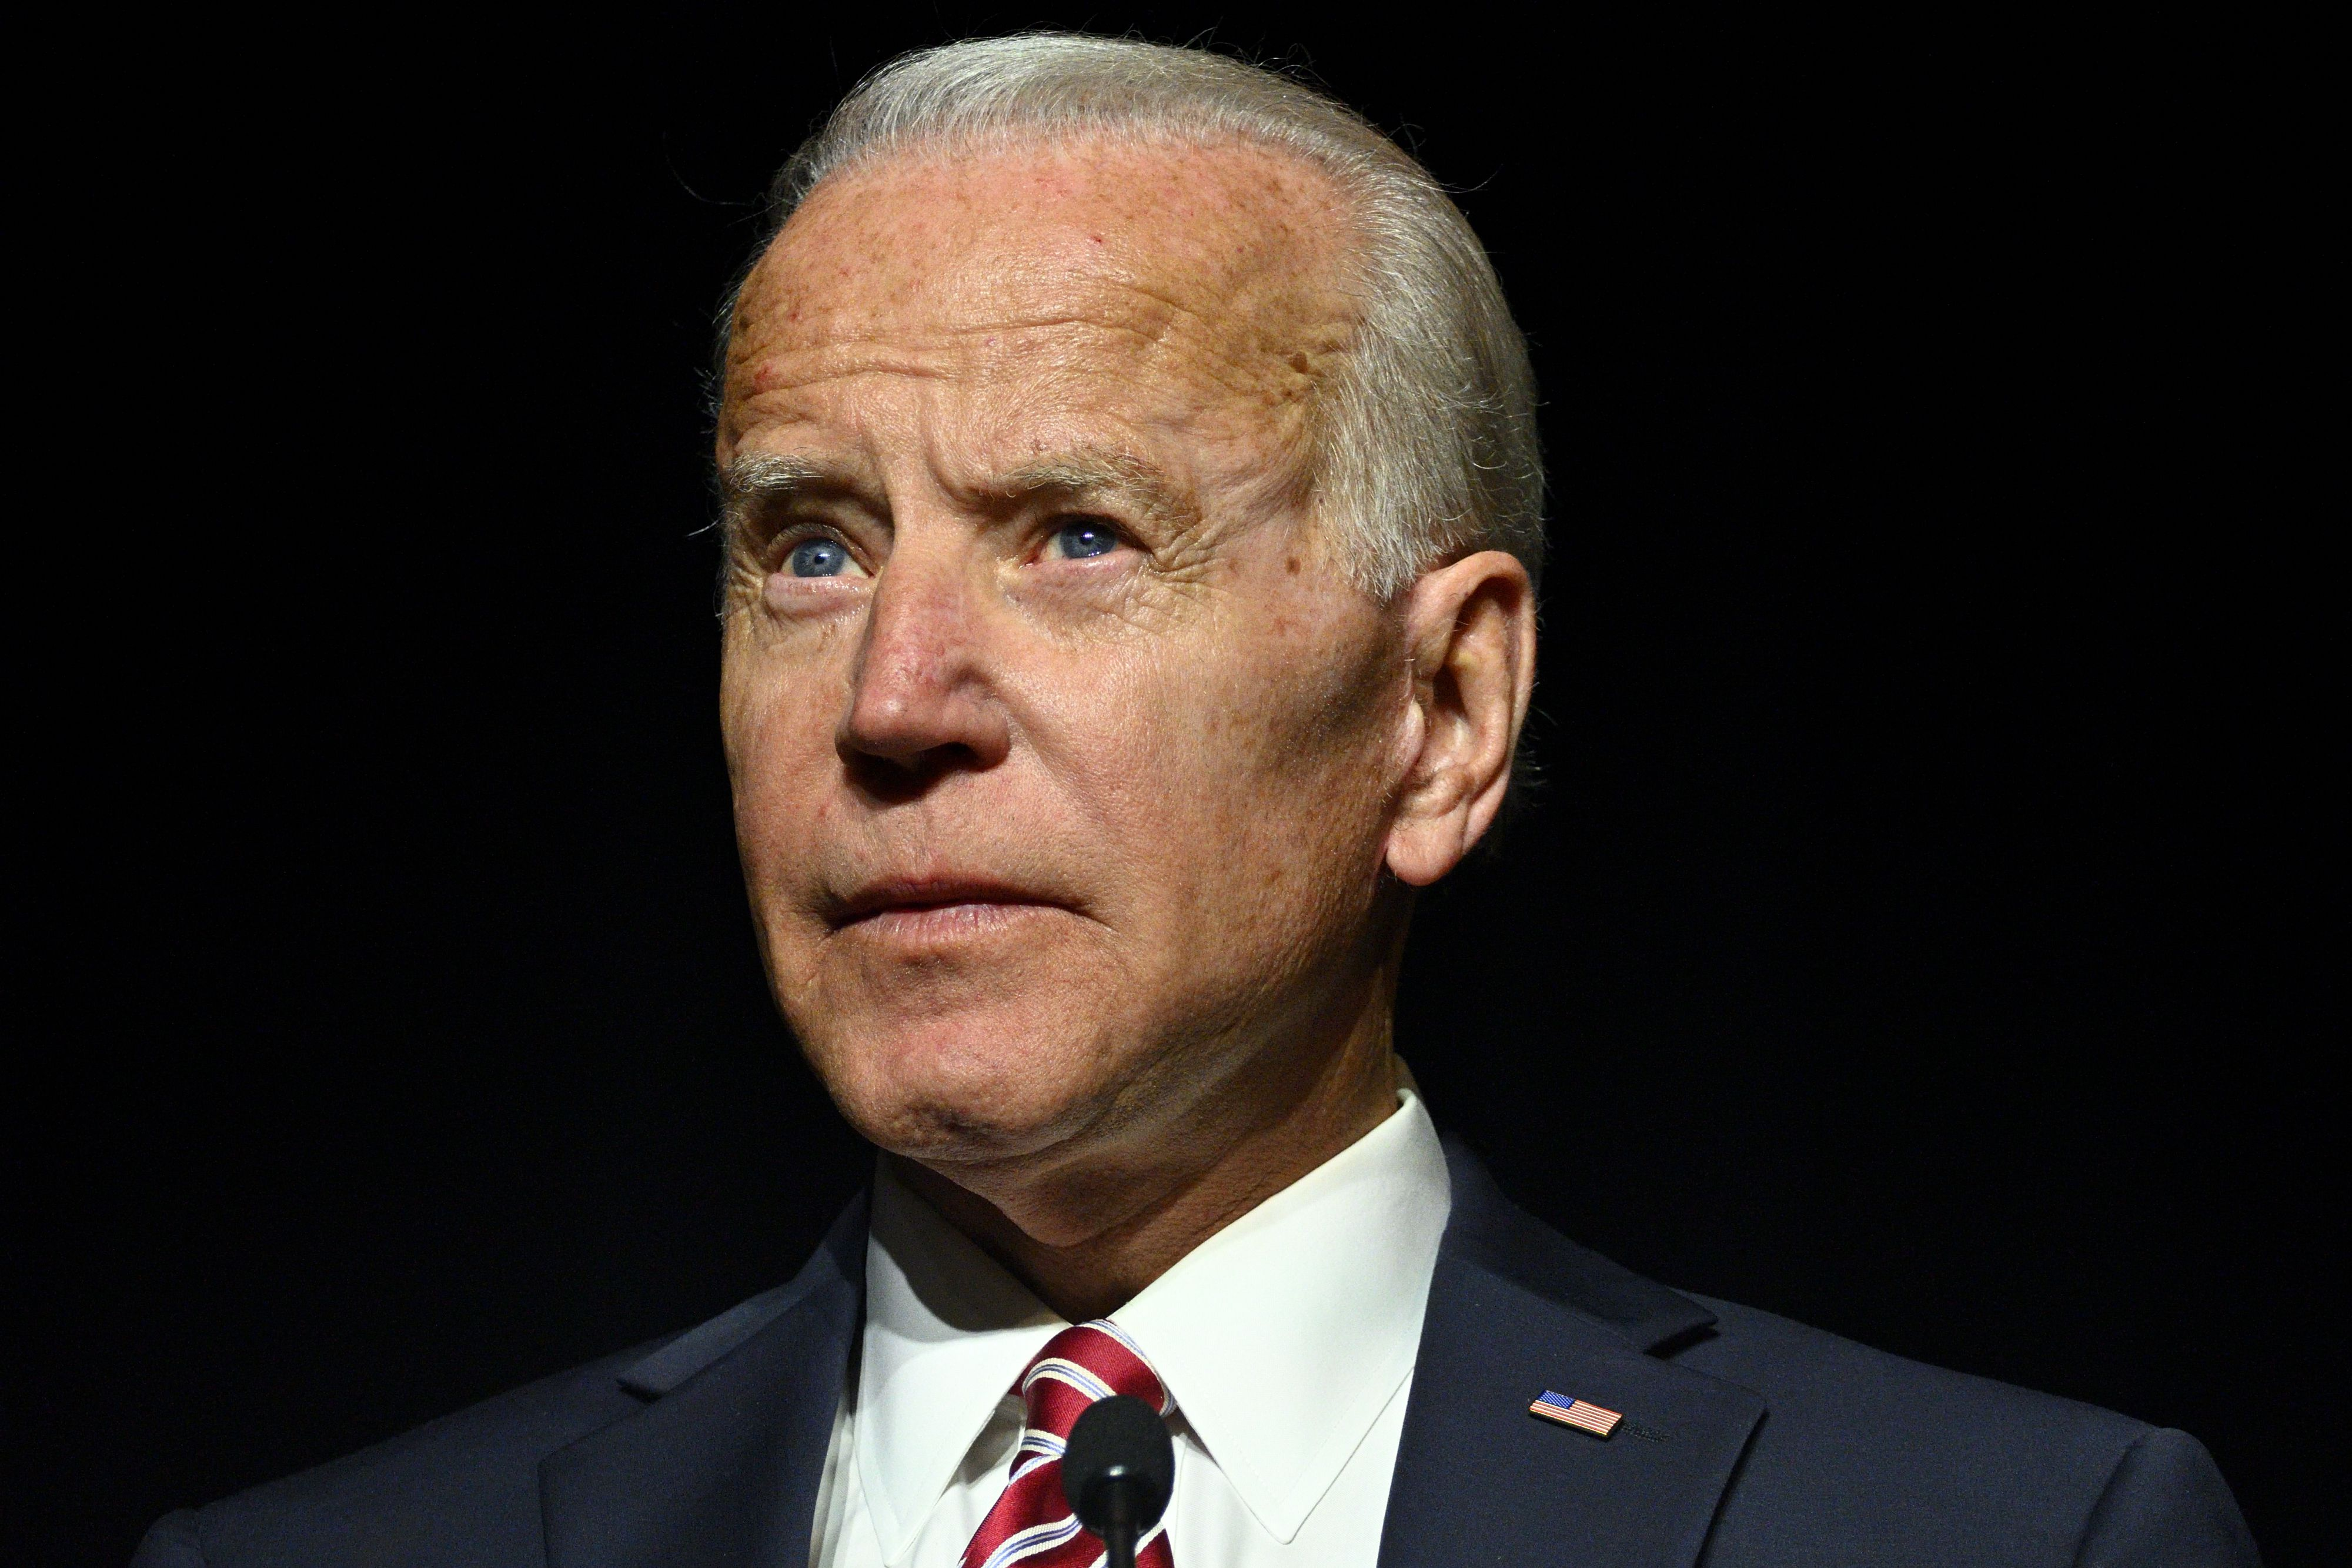 Joe Biden addresses inappropriate touching allegations - Axios